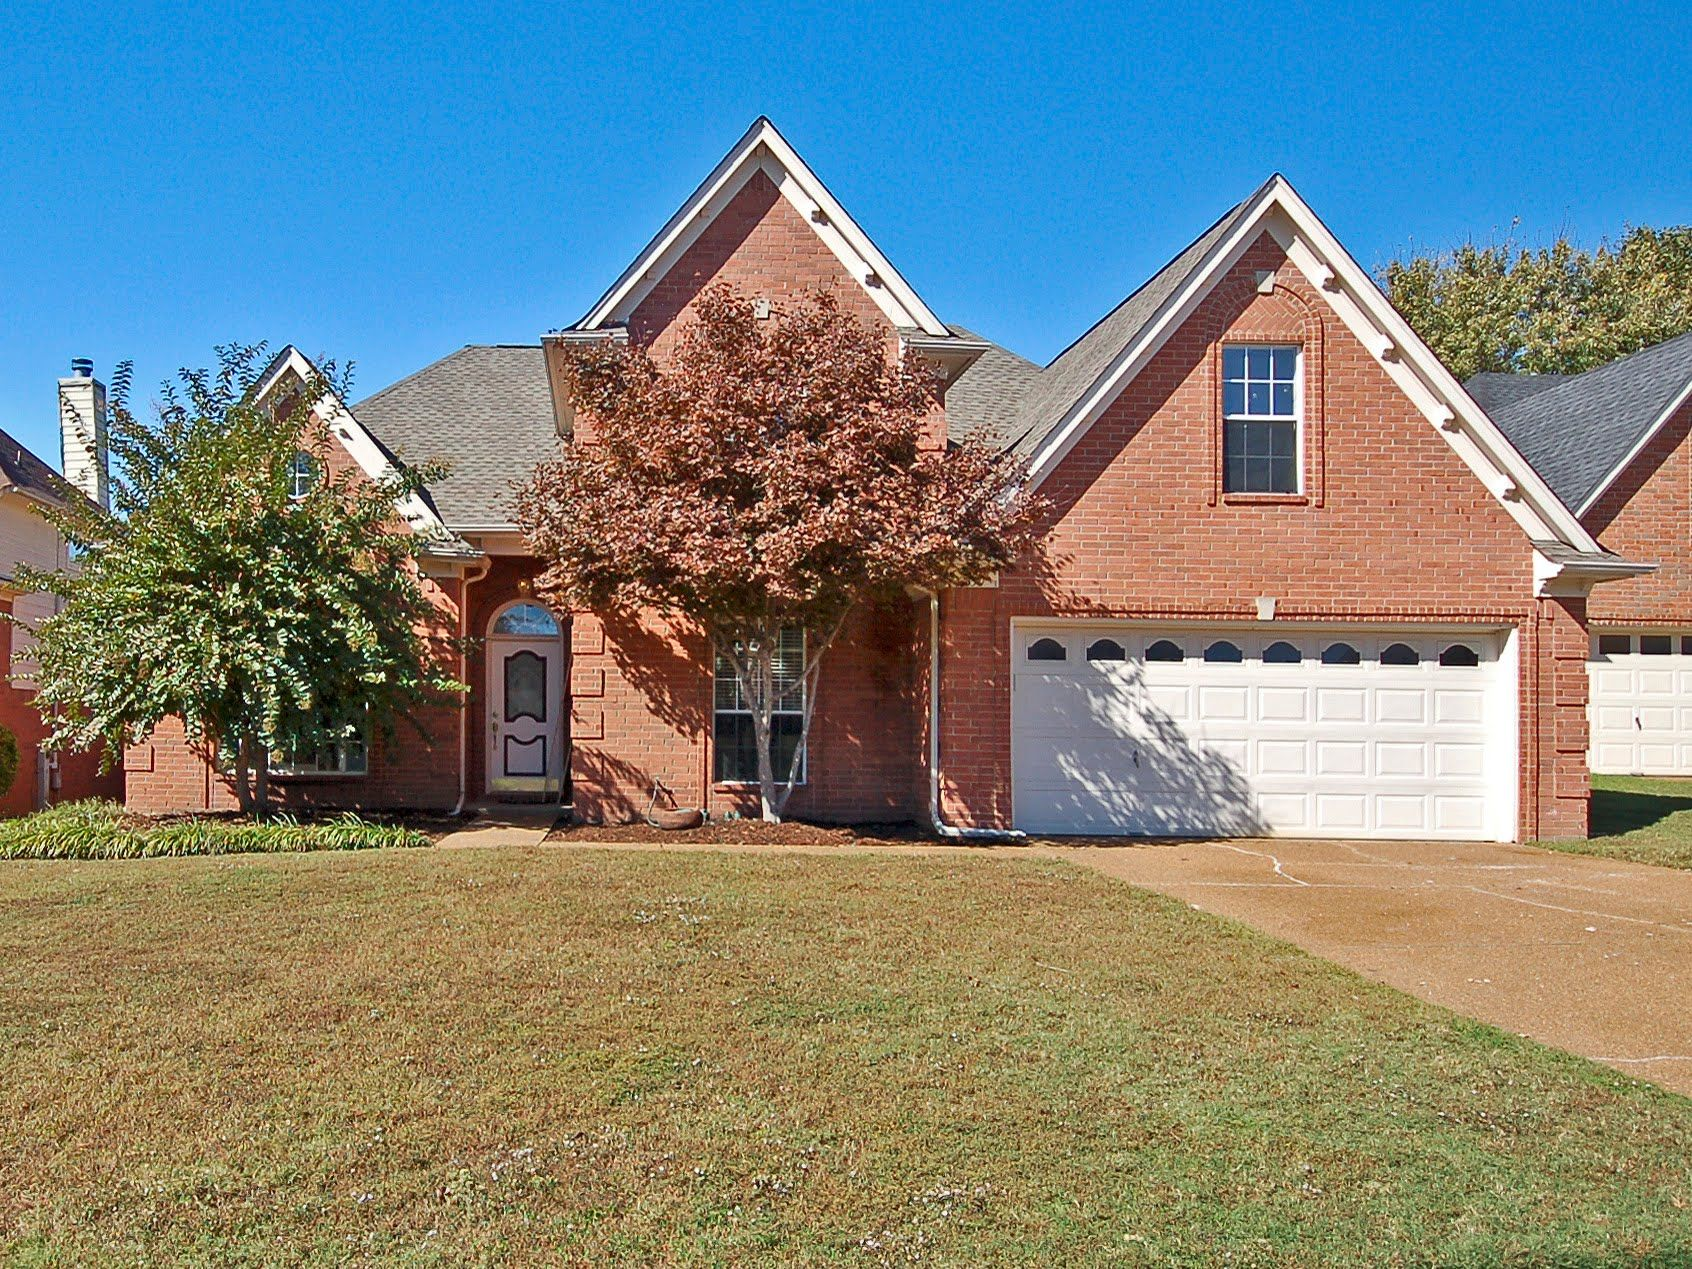 Check out this home I sold at 6330 Fairway View Cove